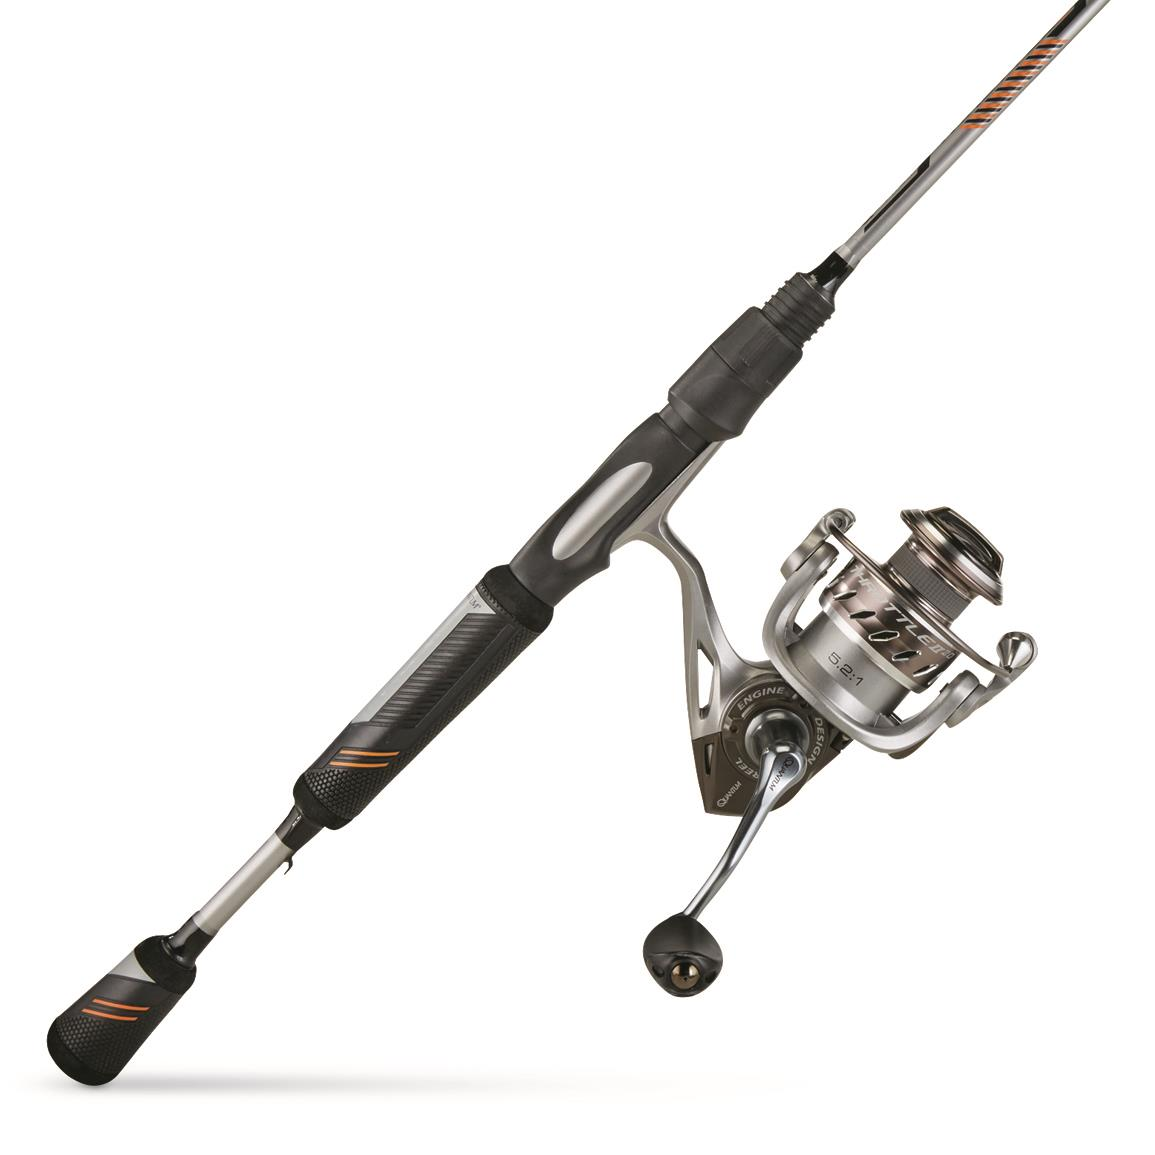 Quantum Throttle II Spinning Rod and Reel Fishing Combo